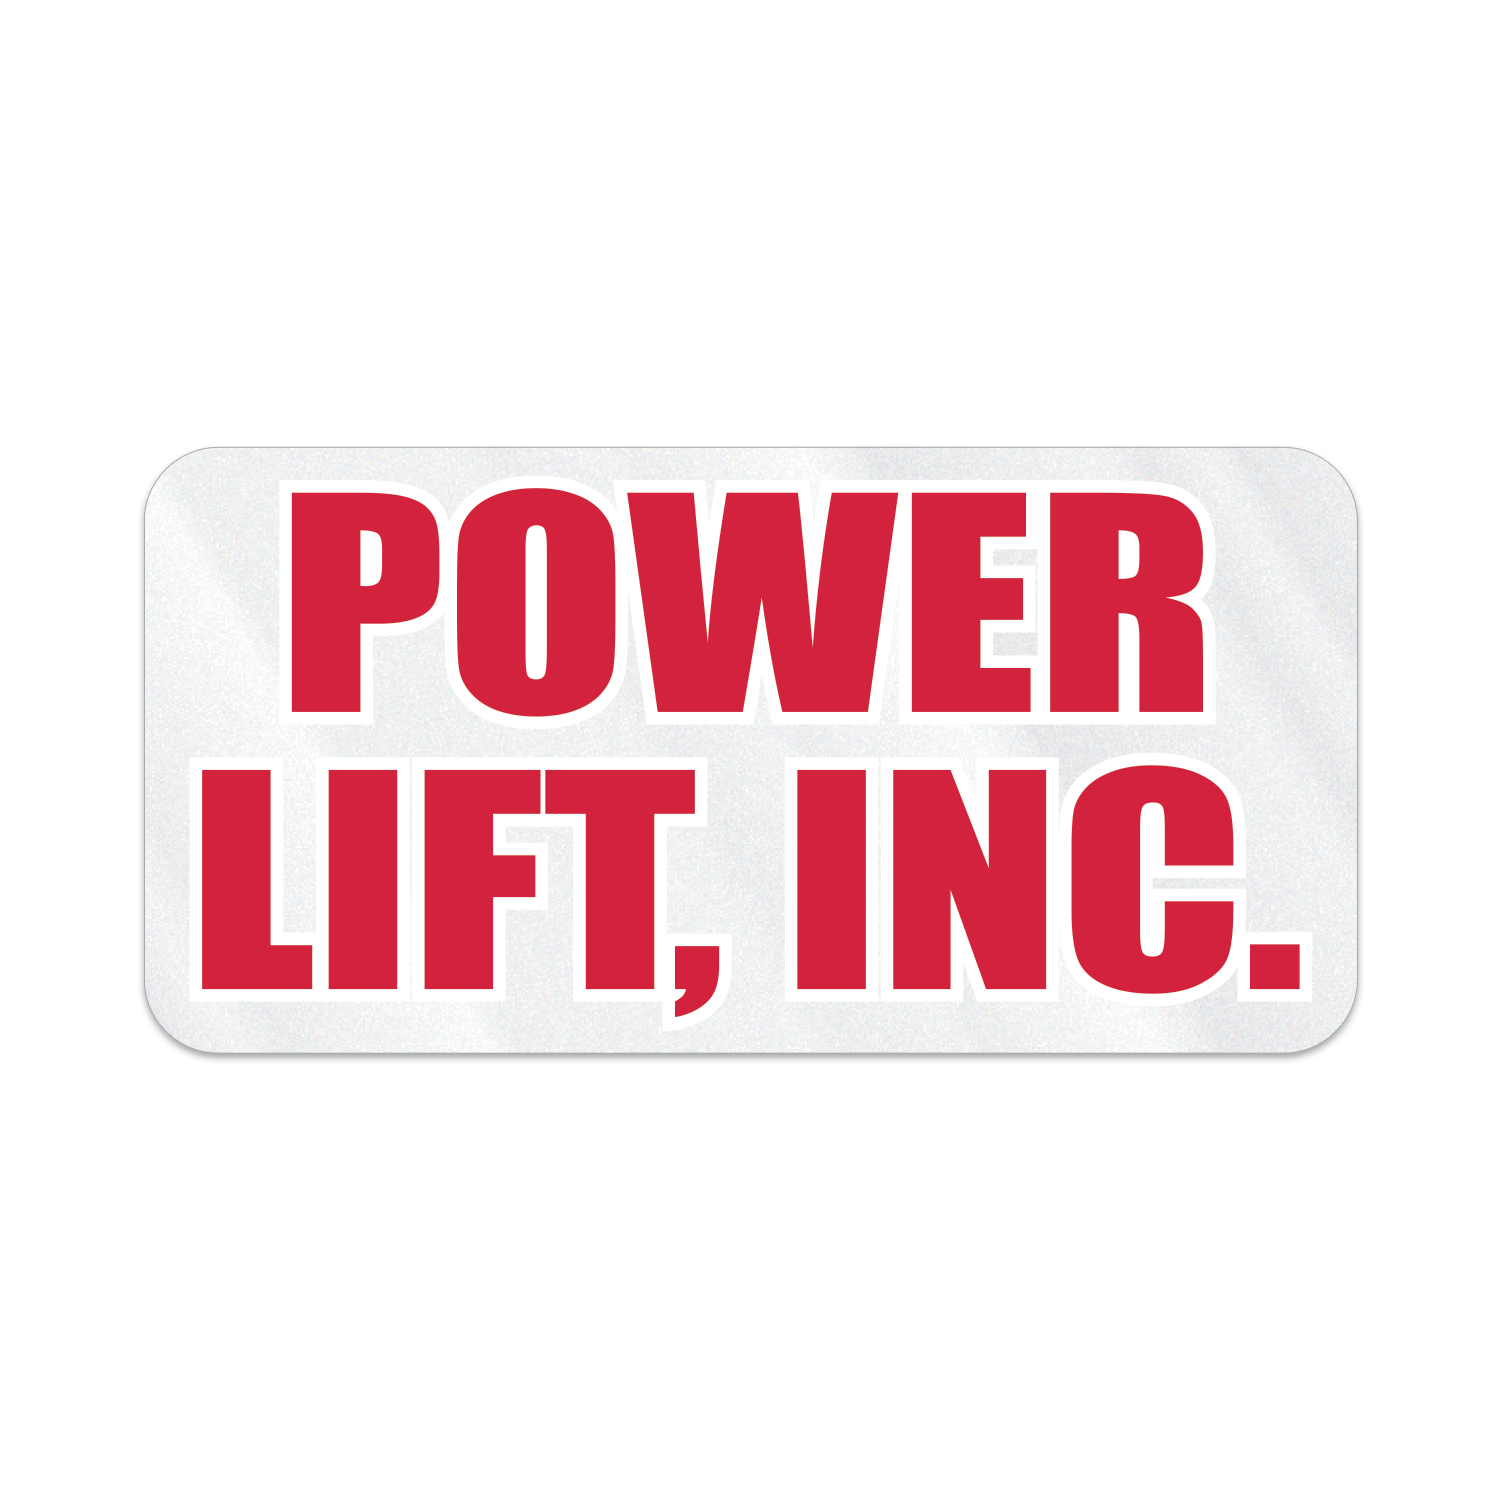 https://www.sswprinting.com/images/products_gallery_images/181707_Power-Lift-Inc_hi-res.png